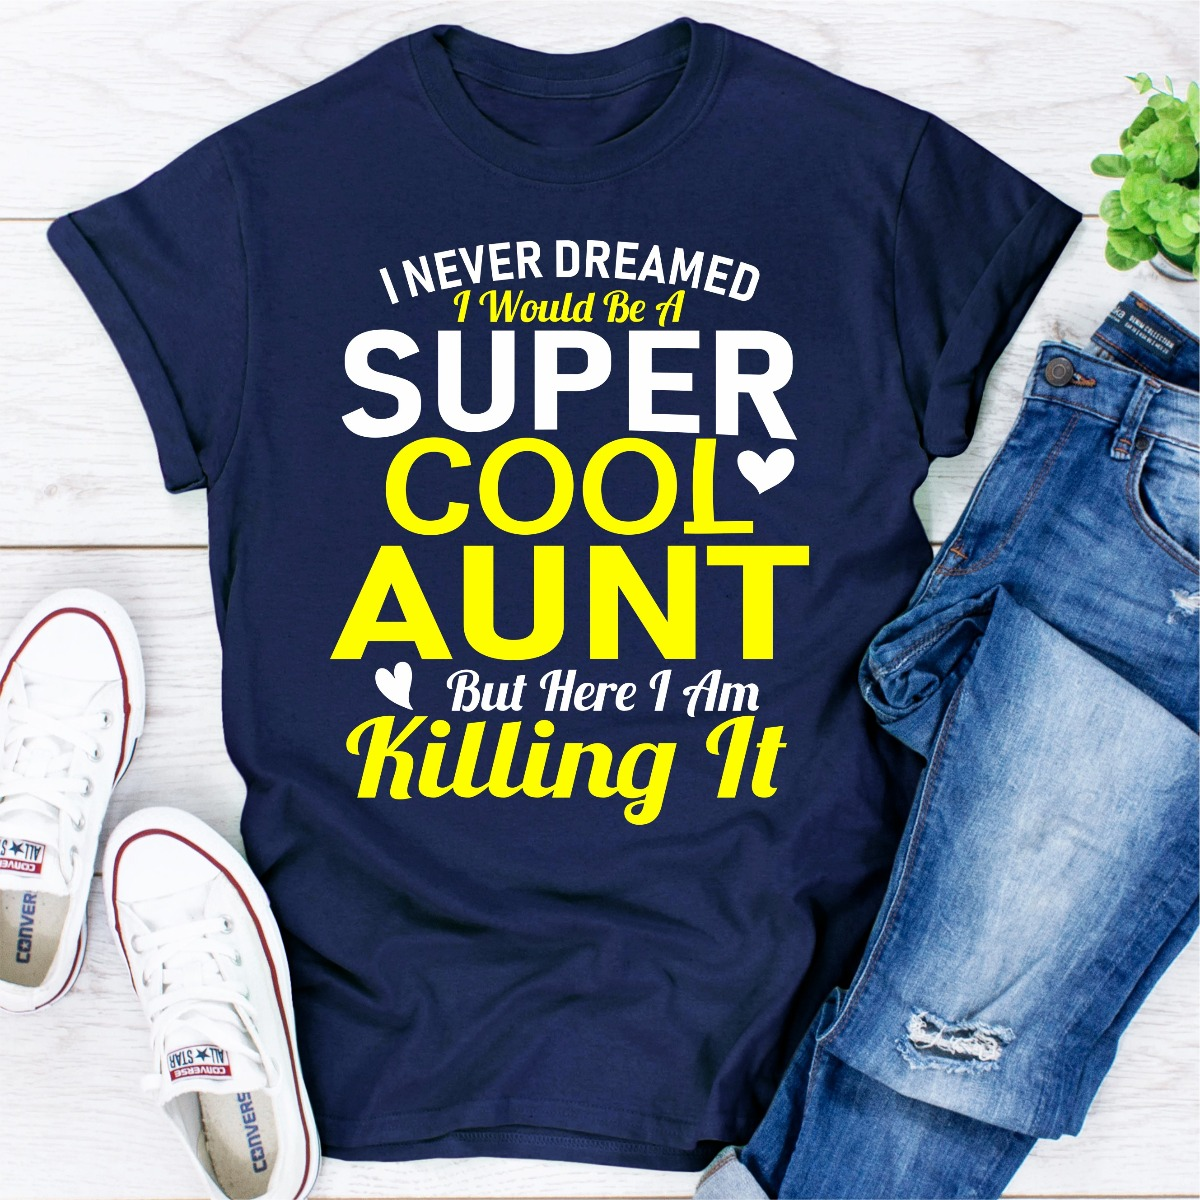 I Never Dreamed I Would Be A Super Cool Aunt But Here I Am Killing It (Navy / 2Xl)